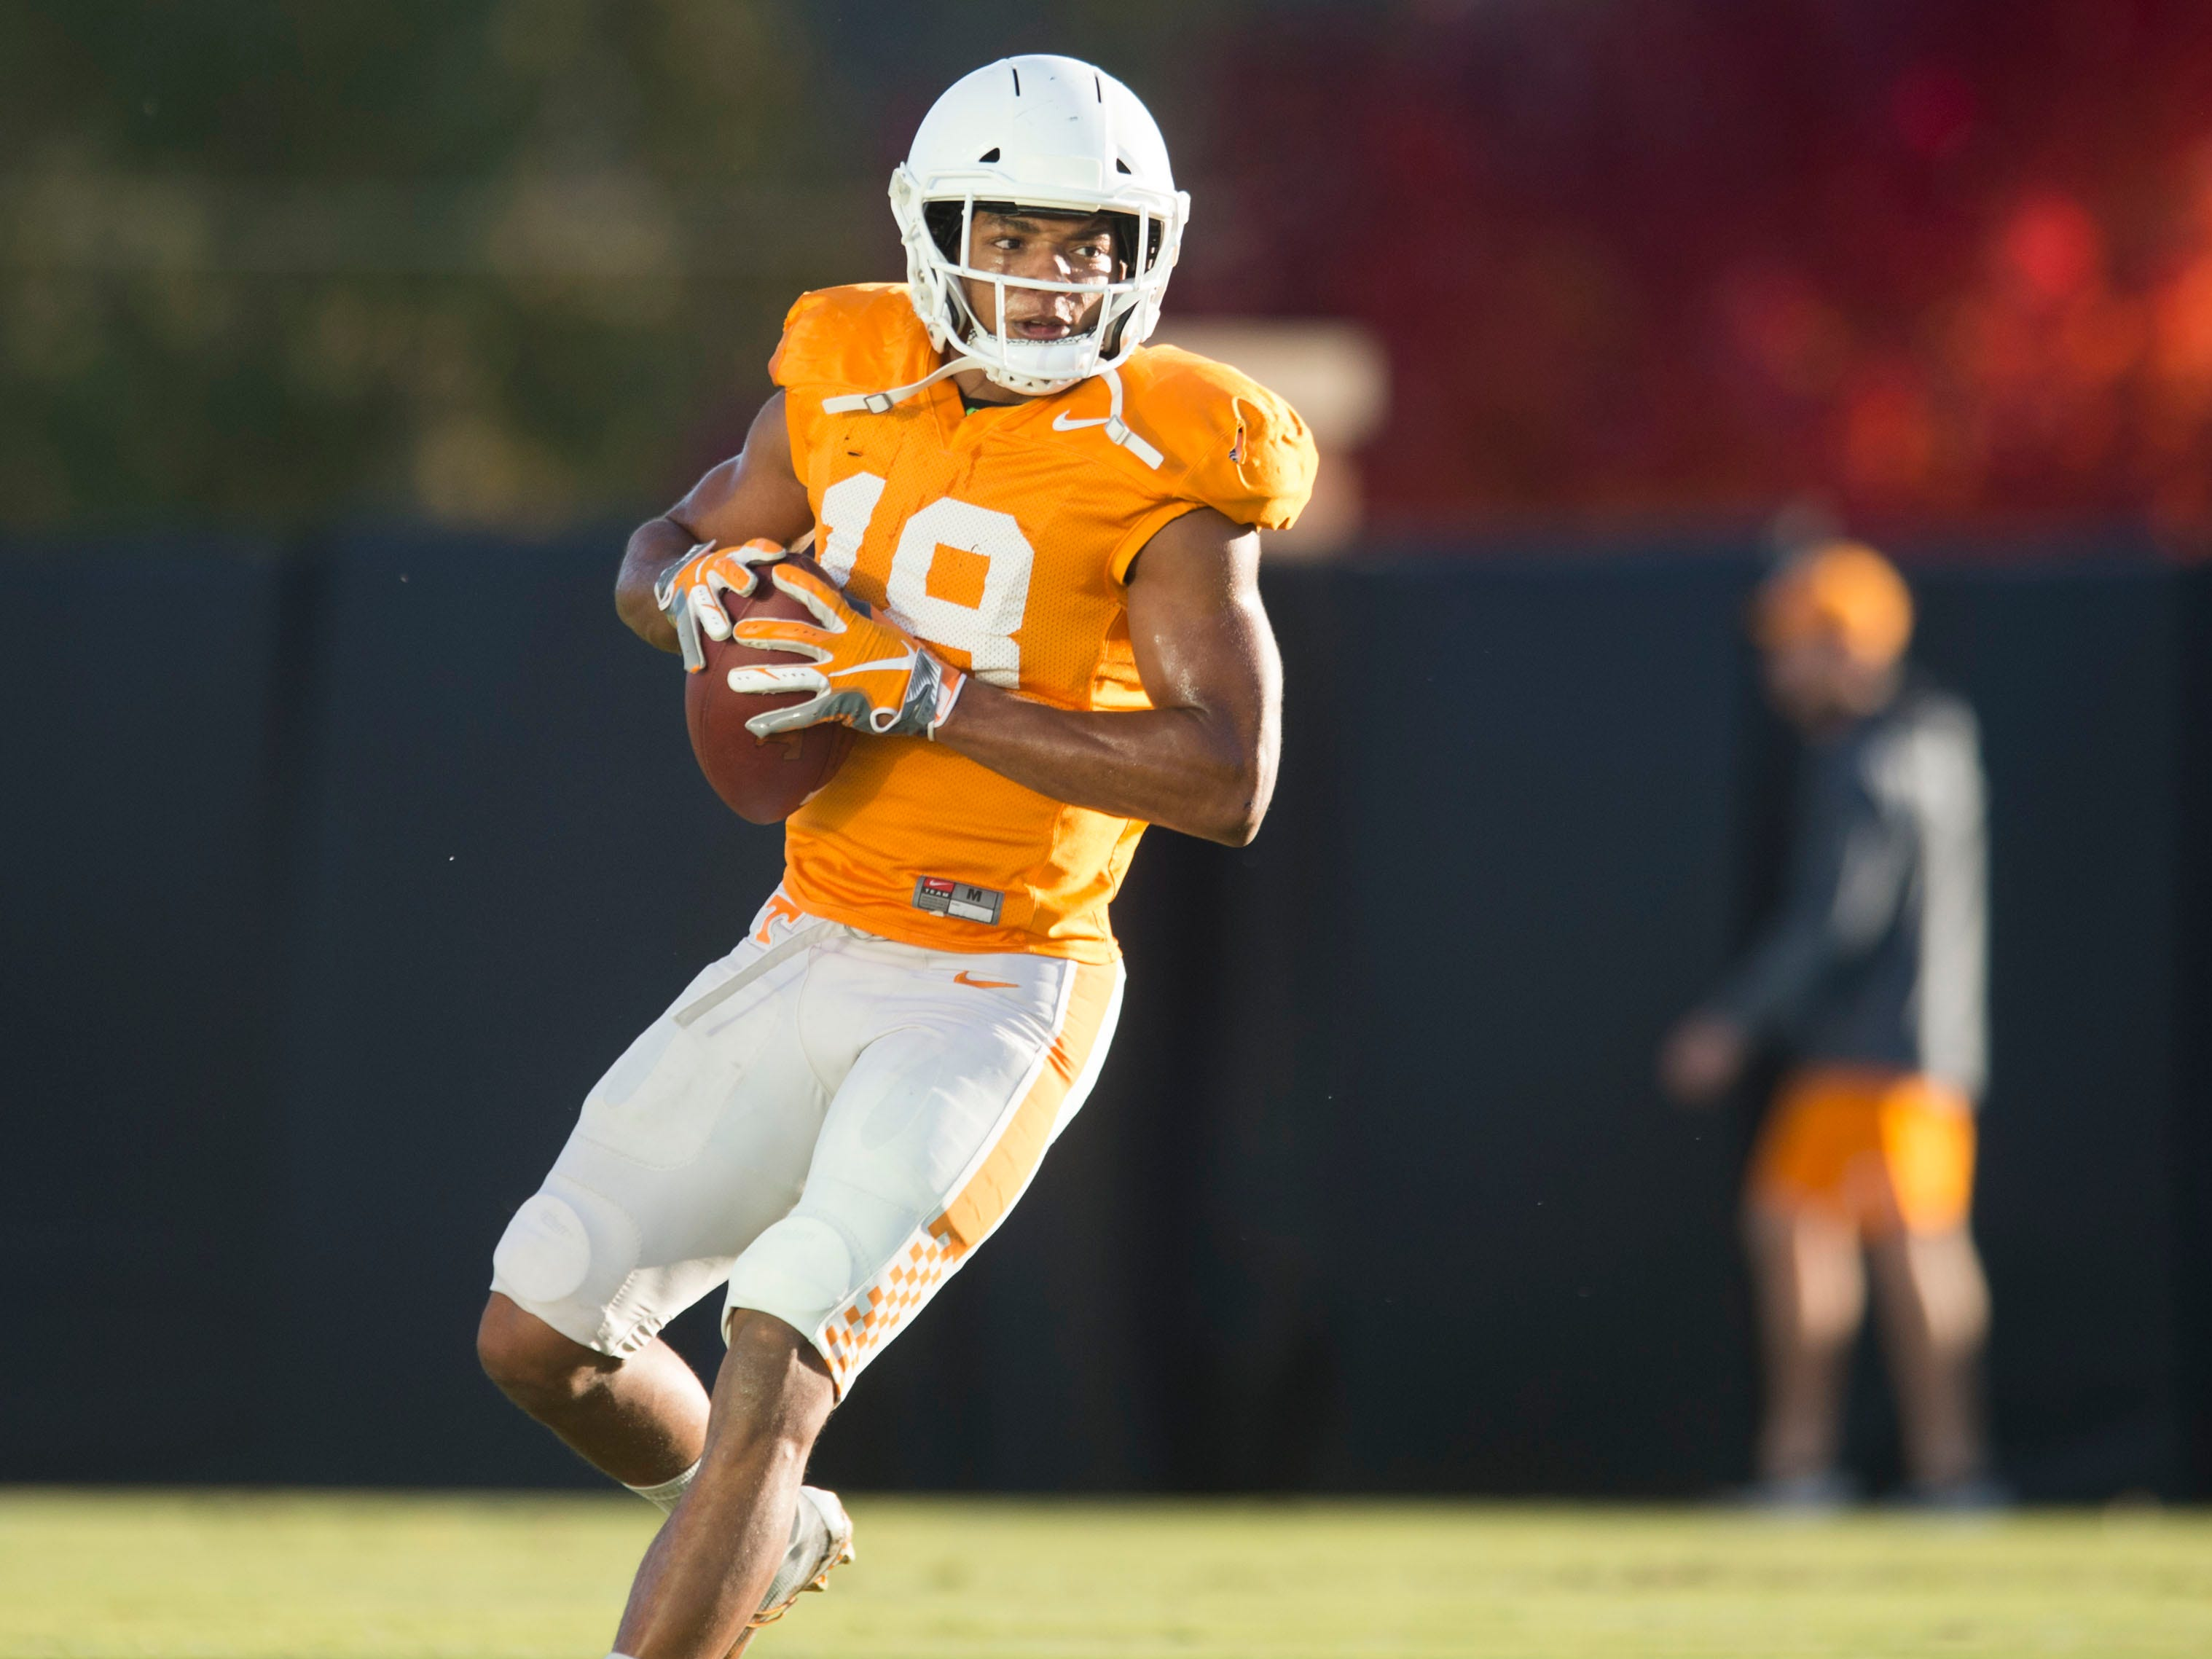 Tennessee defensive back Nigel Warrior (18) at football practice on Tuesday, November 6, 2018.